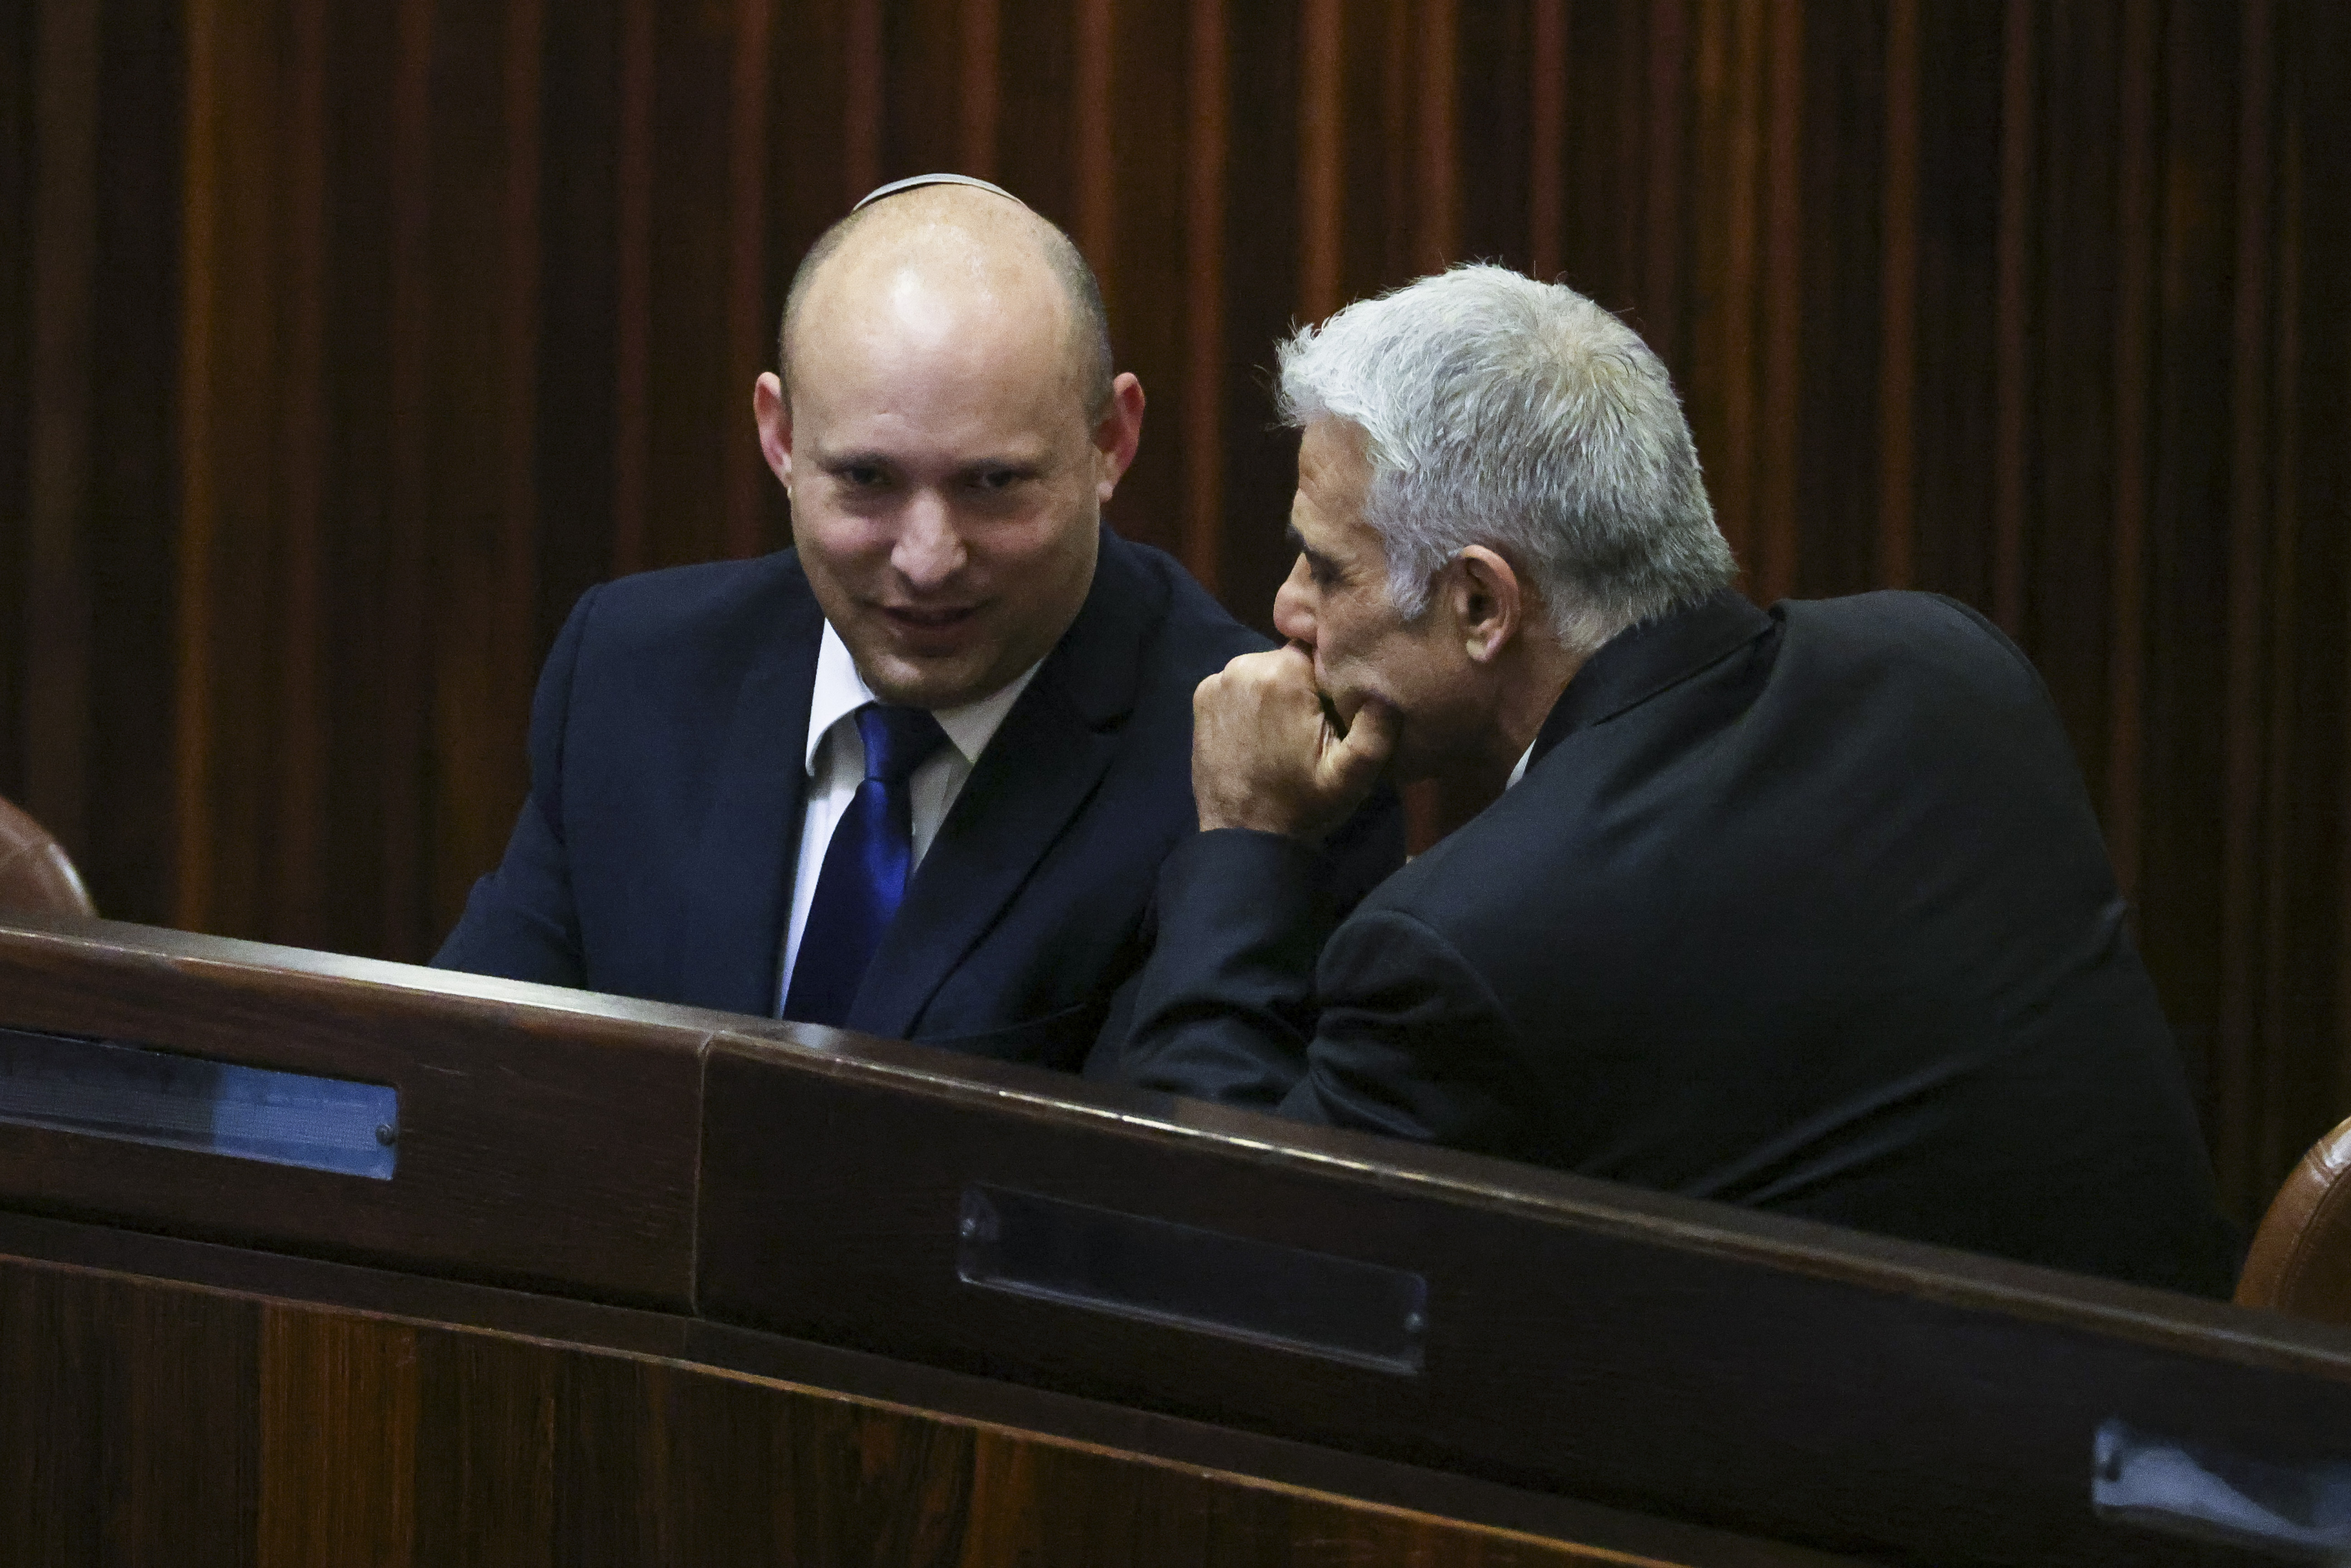 Yamina party leader Naftali Bennett, left, smiles as he speaks to Yesh Atid party leader Yair Lapid during a special session of the Knesset in Jerusalem on Wednesday, June 2, 2021.